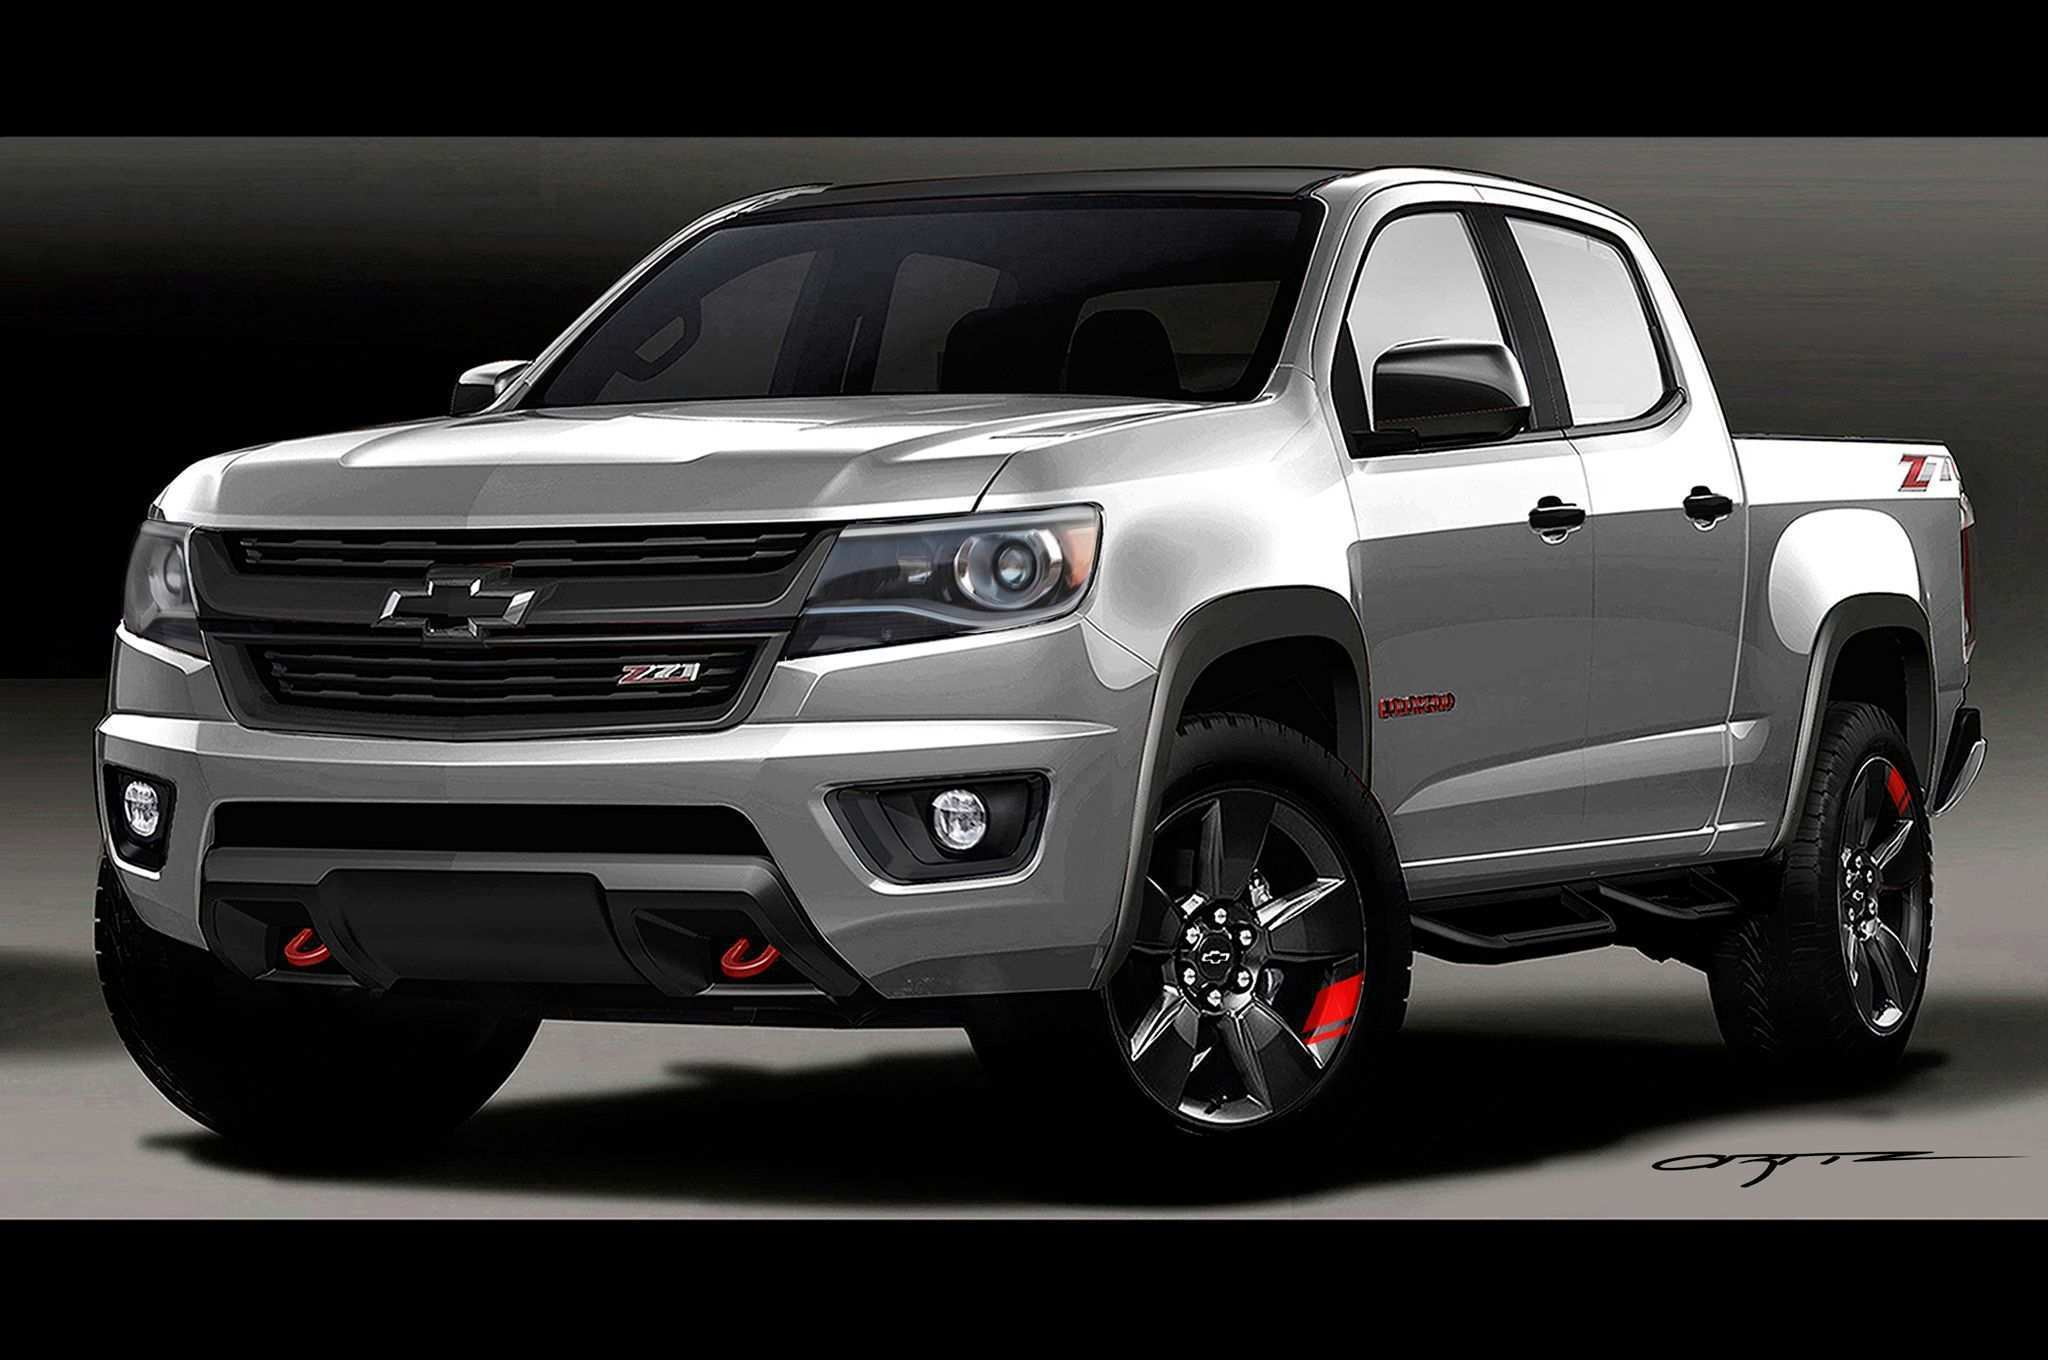 2020 Chevy Colorado Going Launched Soon Reviews